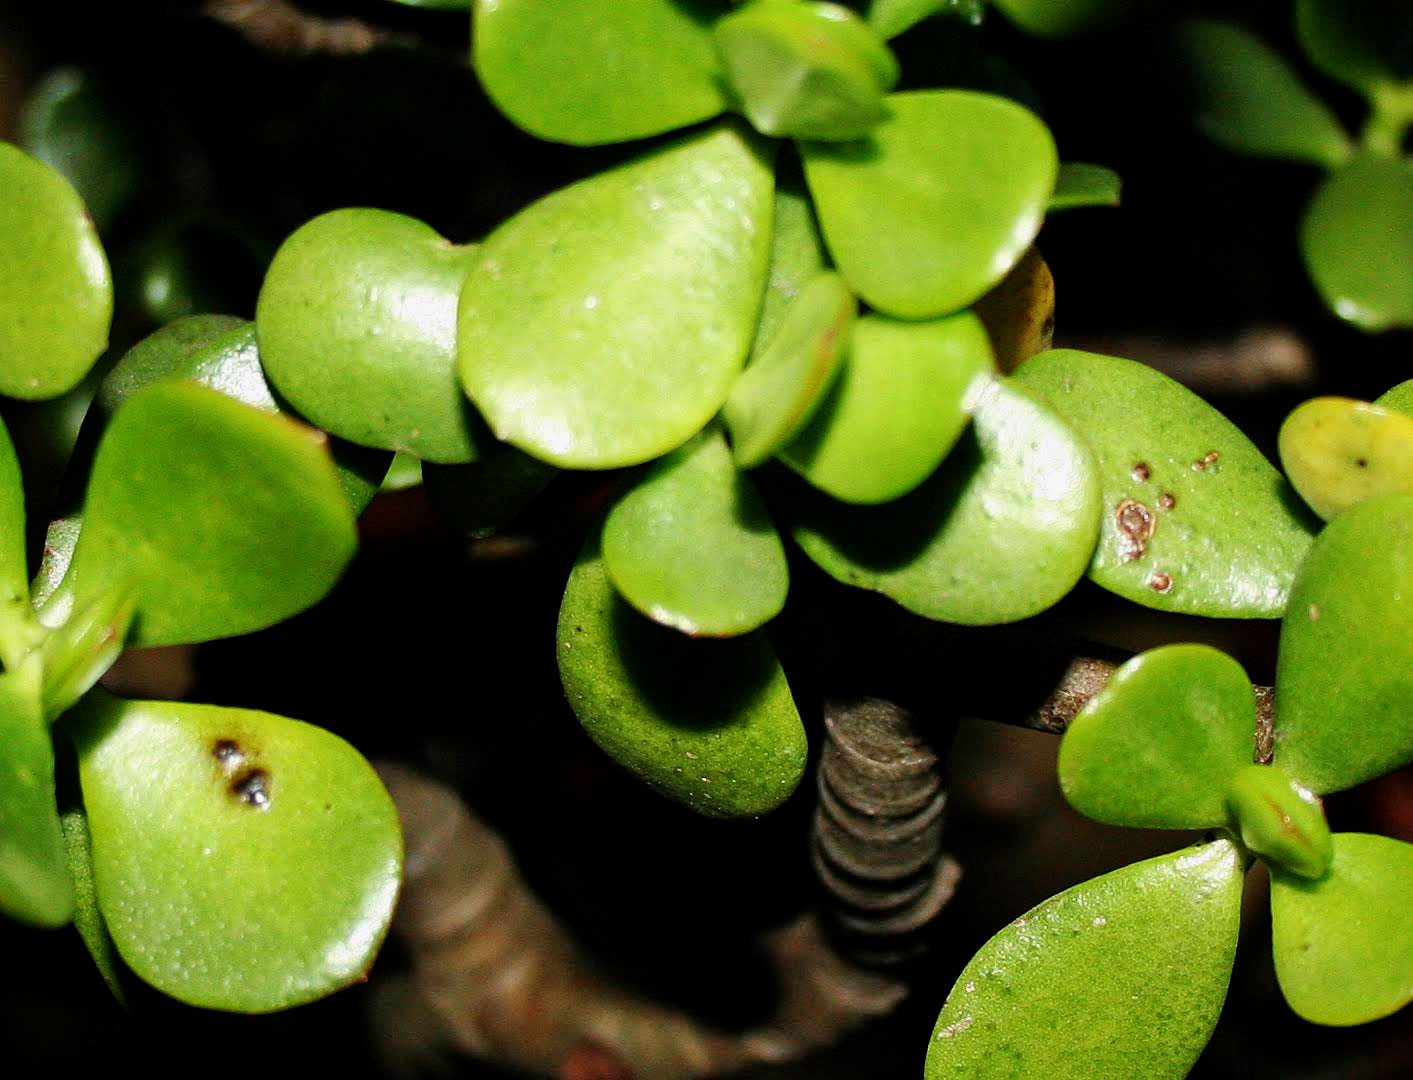 Jade Plant Problems What To Do For Black Spots On Jade Plant Leaves